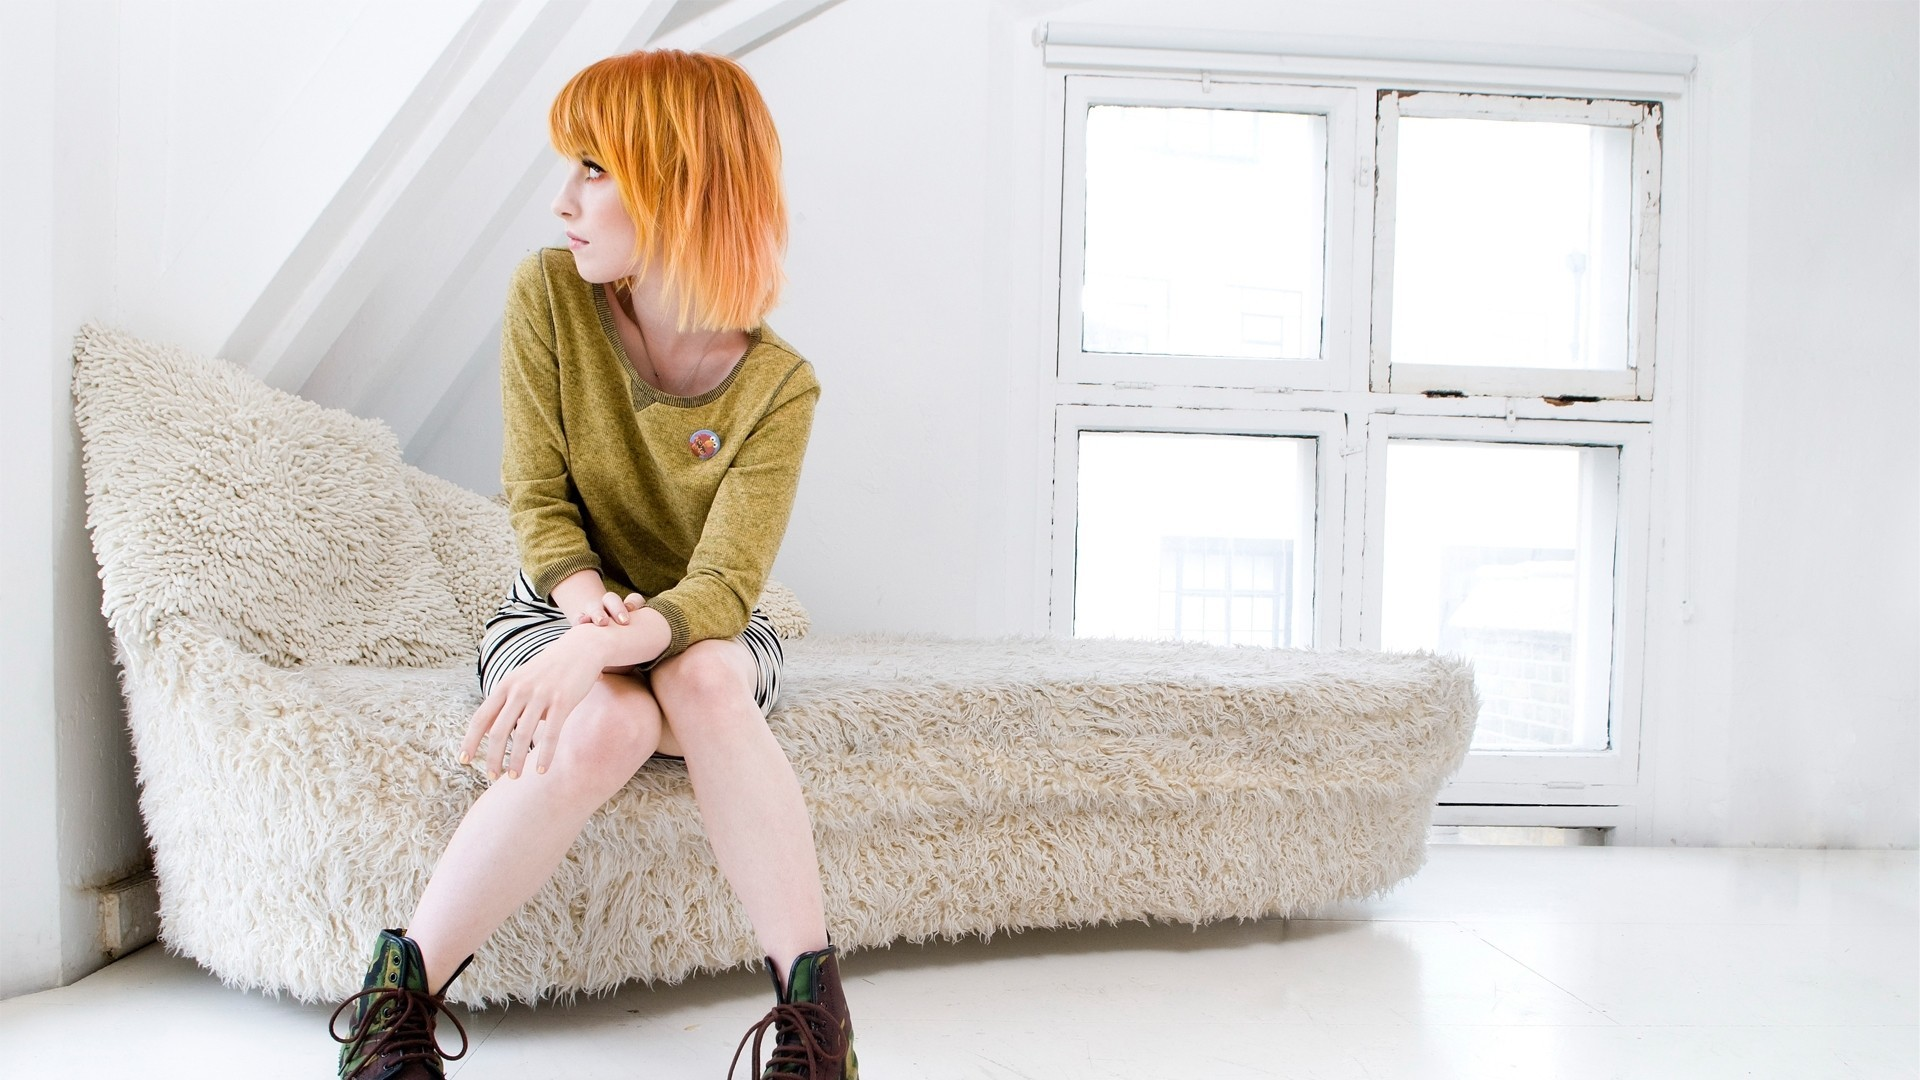 hayley williams woman couch HD Wallpaper